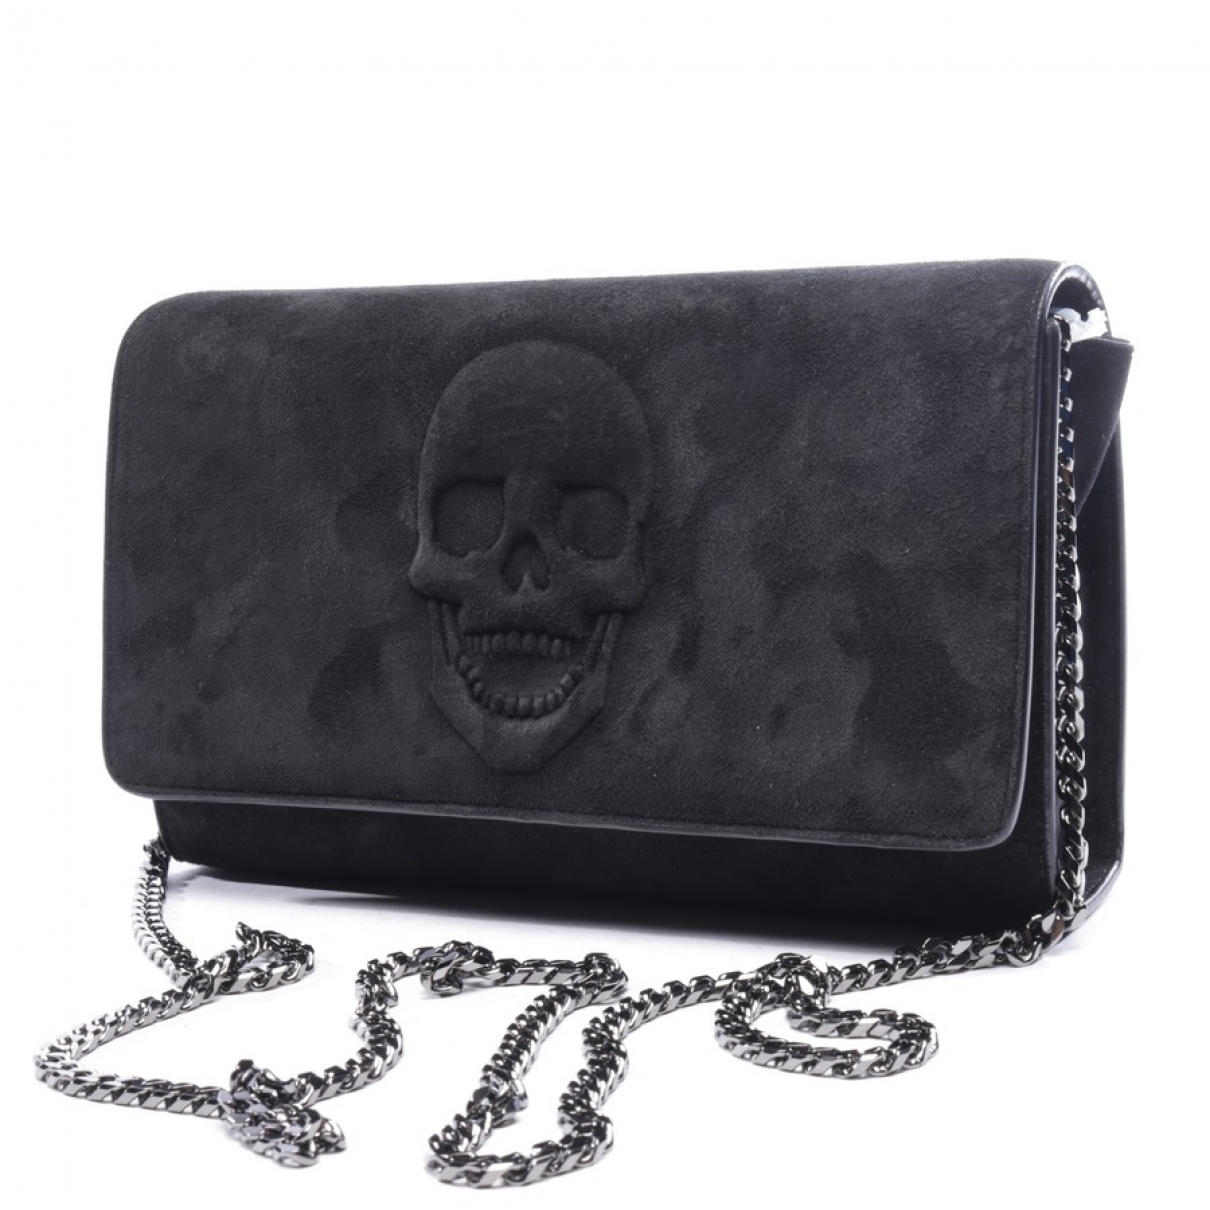 Philipp Plein \N Black Suede Clutch bag for Women \N